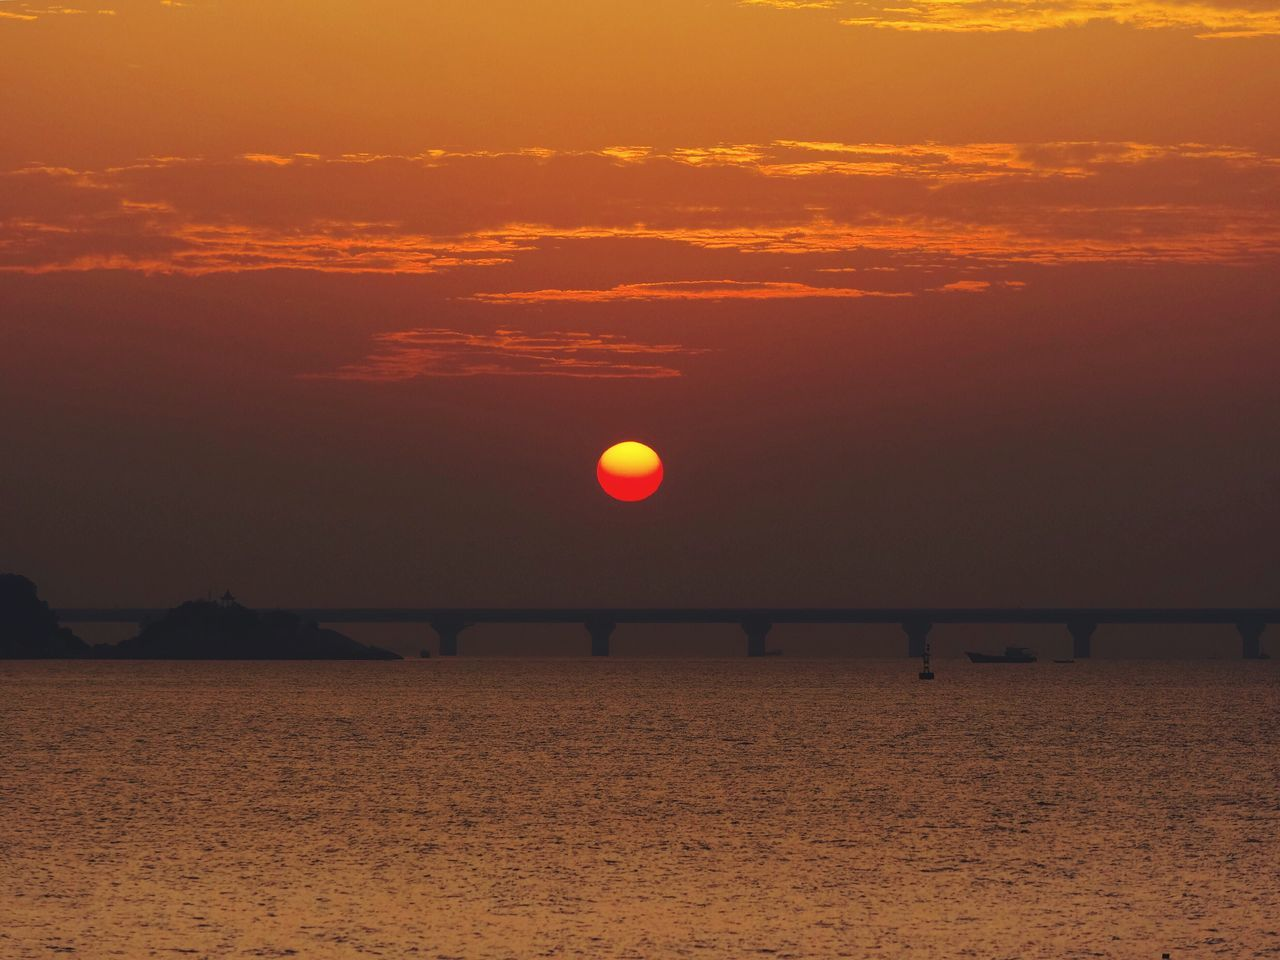 Last Sunrise 2016 Sea Beauty In Nature Sky Nature Orange Color Beach Scenics Tranquility Water Ball Tranquil Scene Horizon Over Water Outdoors Sun No People Beach Volleyball Sunrise Seascape Zhuhai Sea_collection Mountain Silhouette China Sea View Bridge